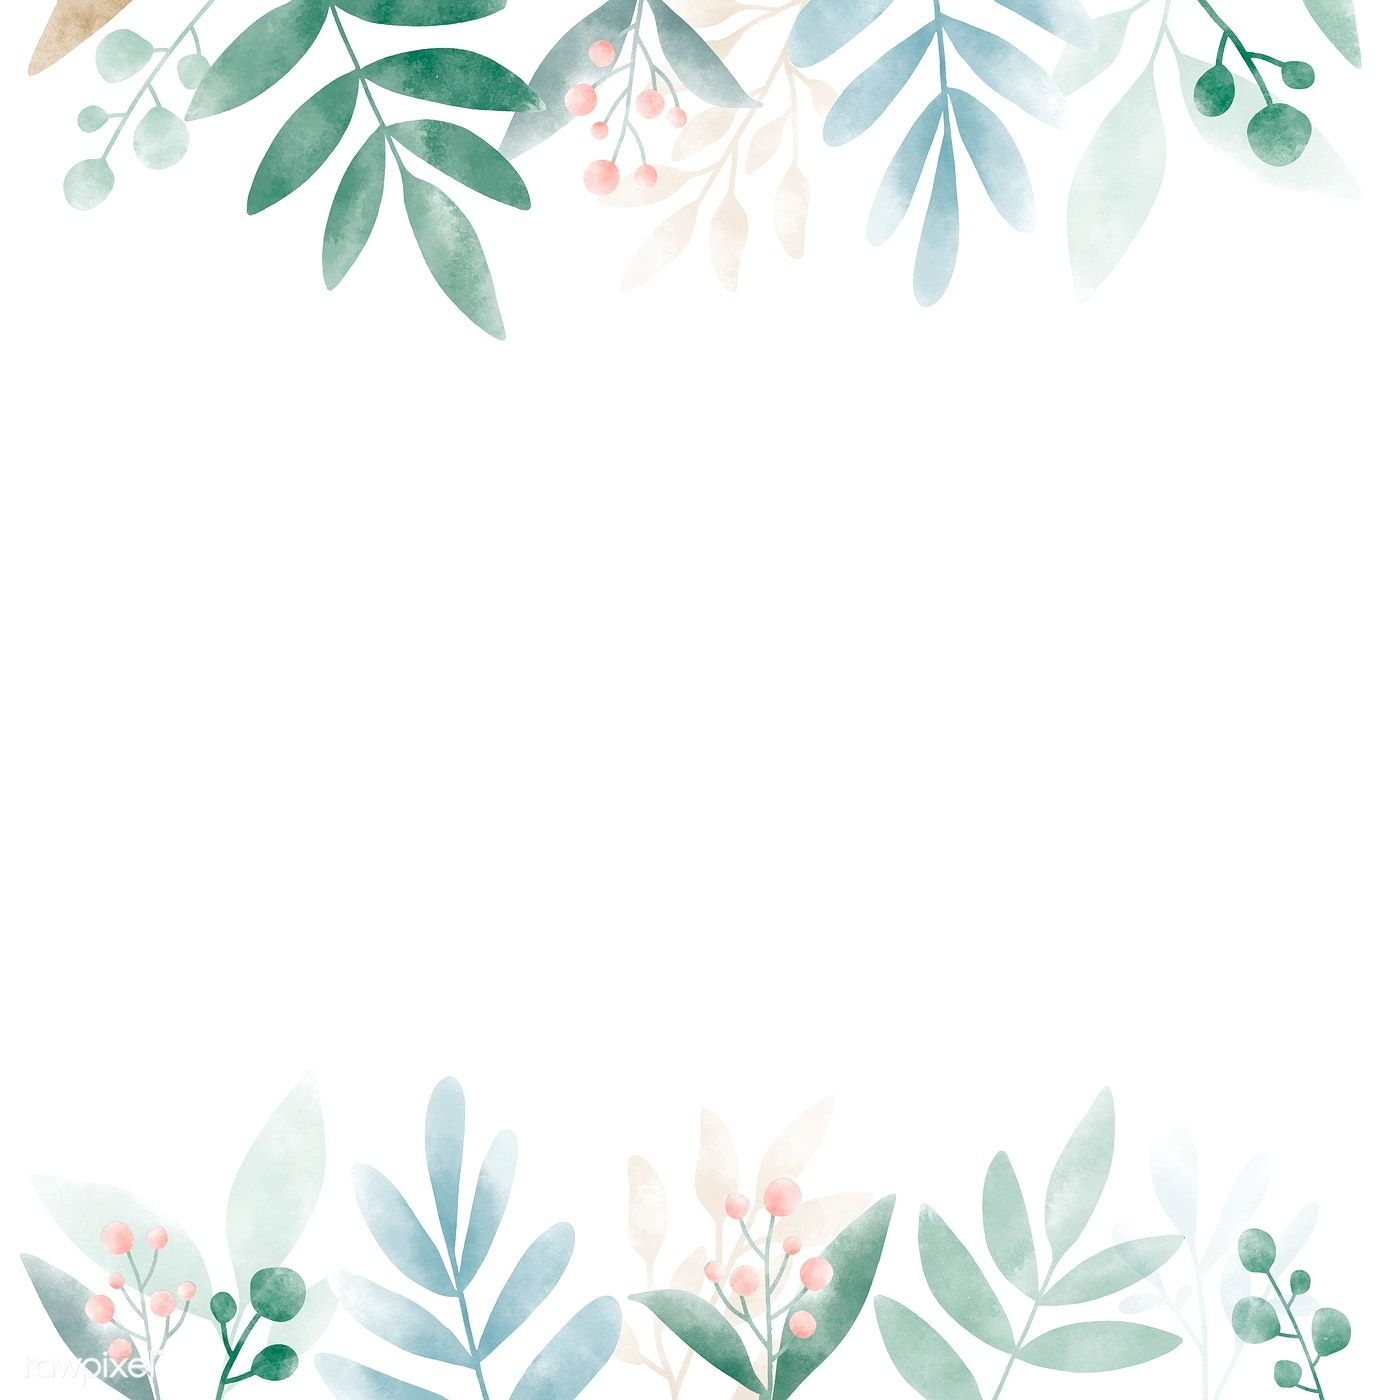 Download Premium Vector Of Watercolor Leaves With Copy Space